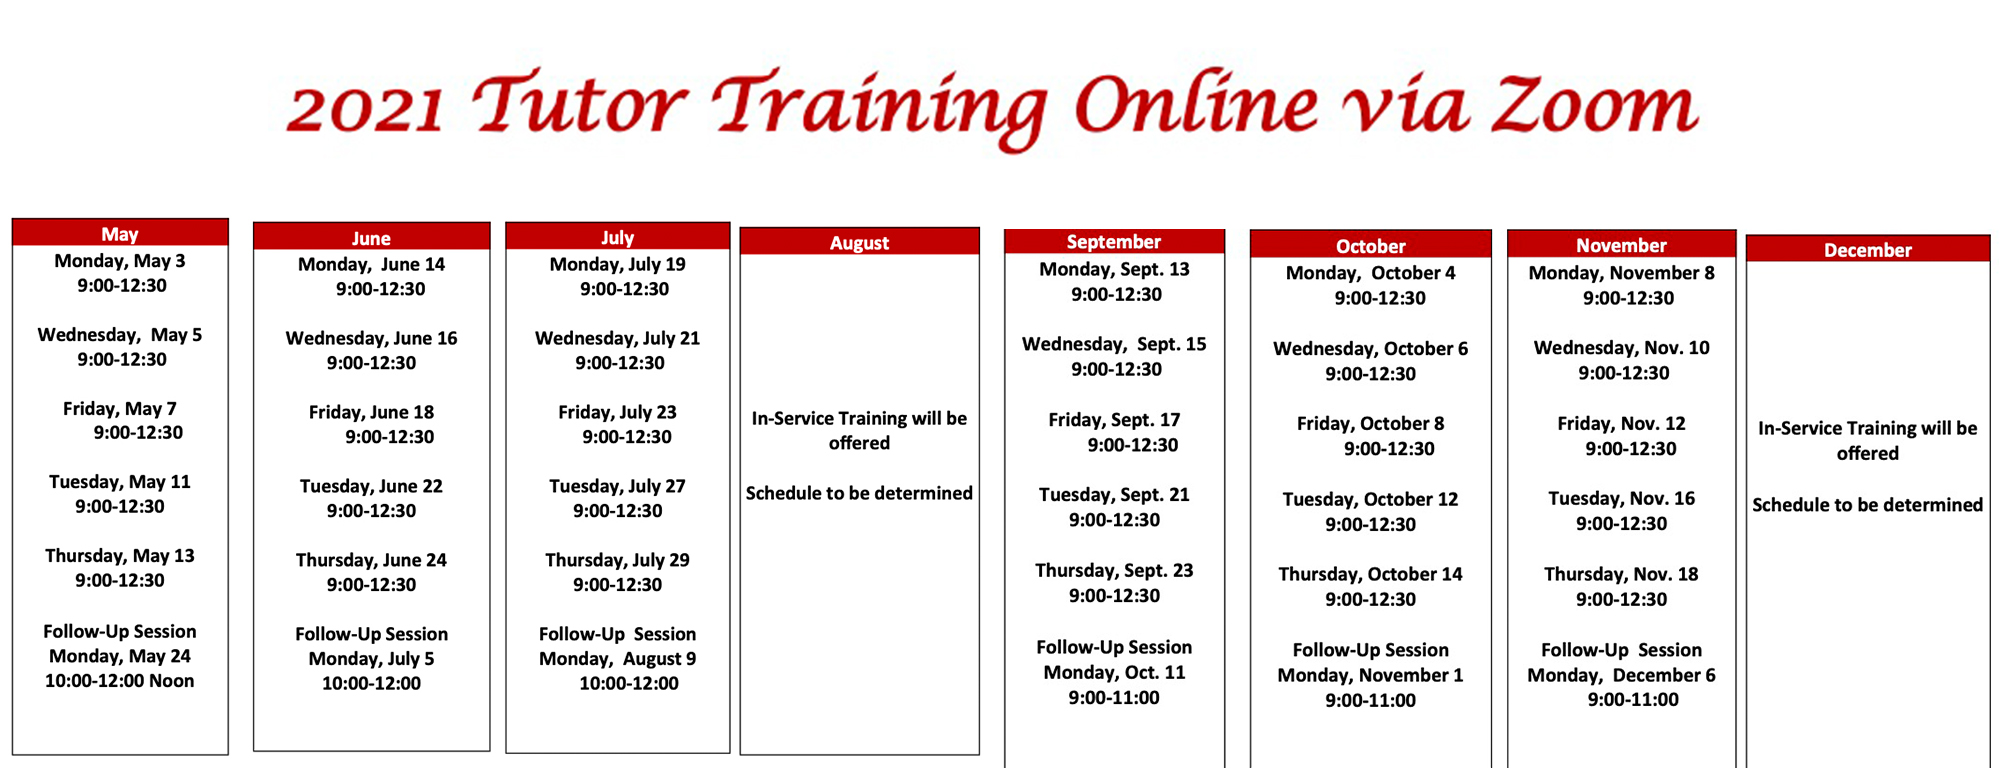 may to december 2021 tutor training schedule